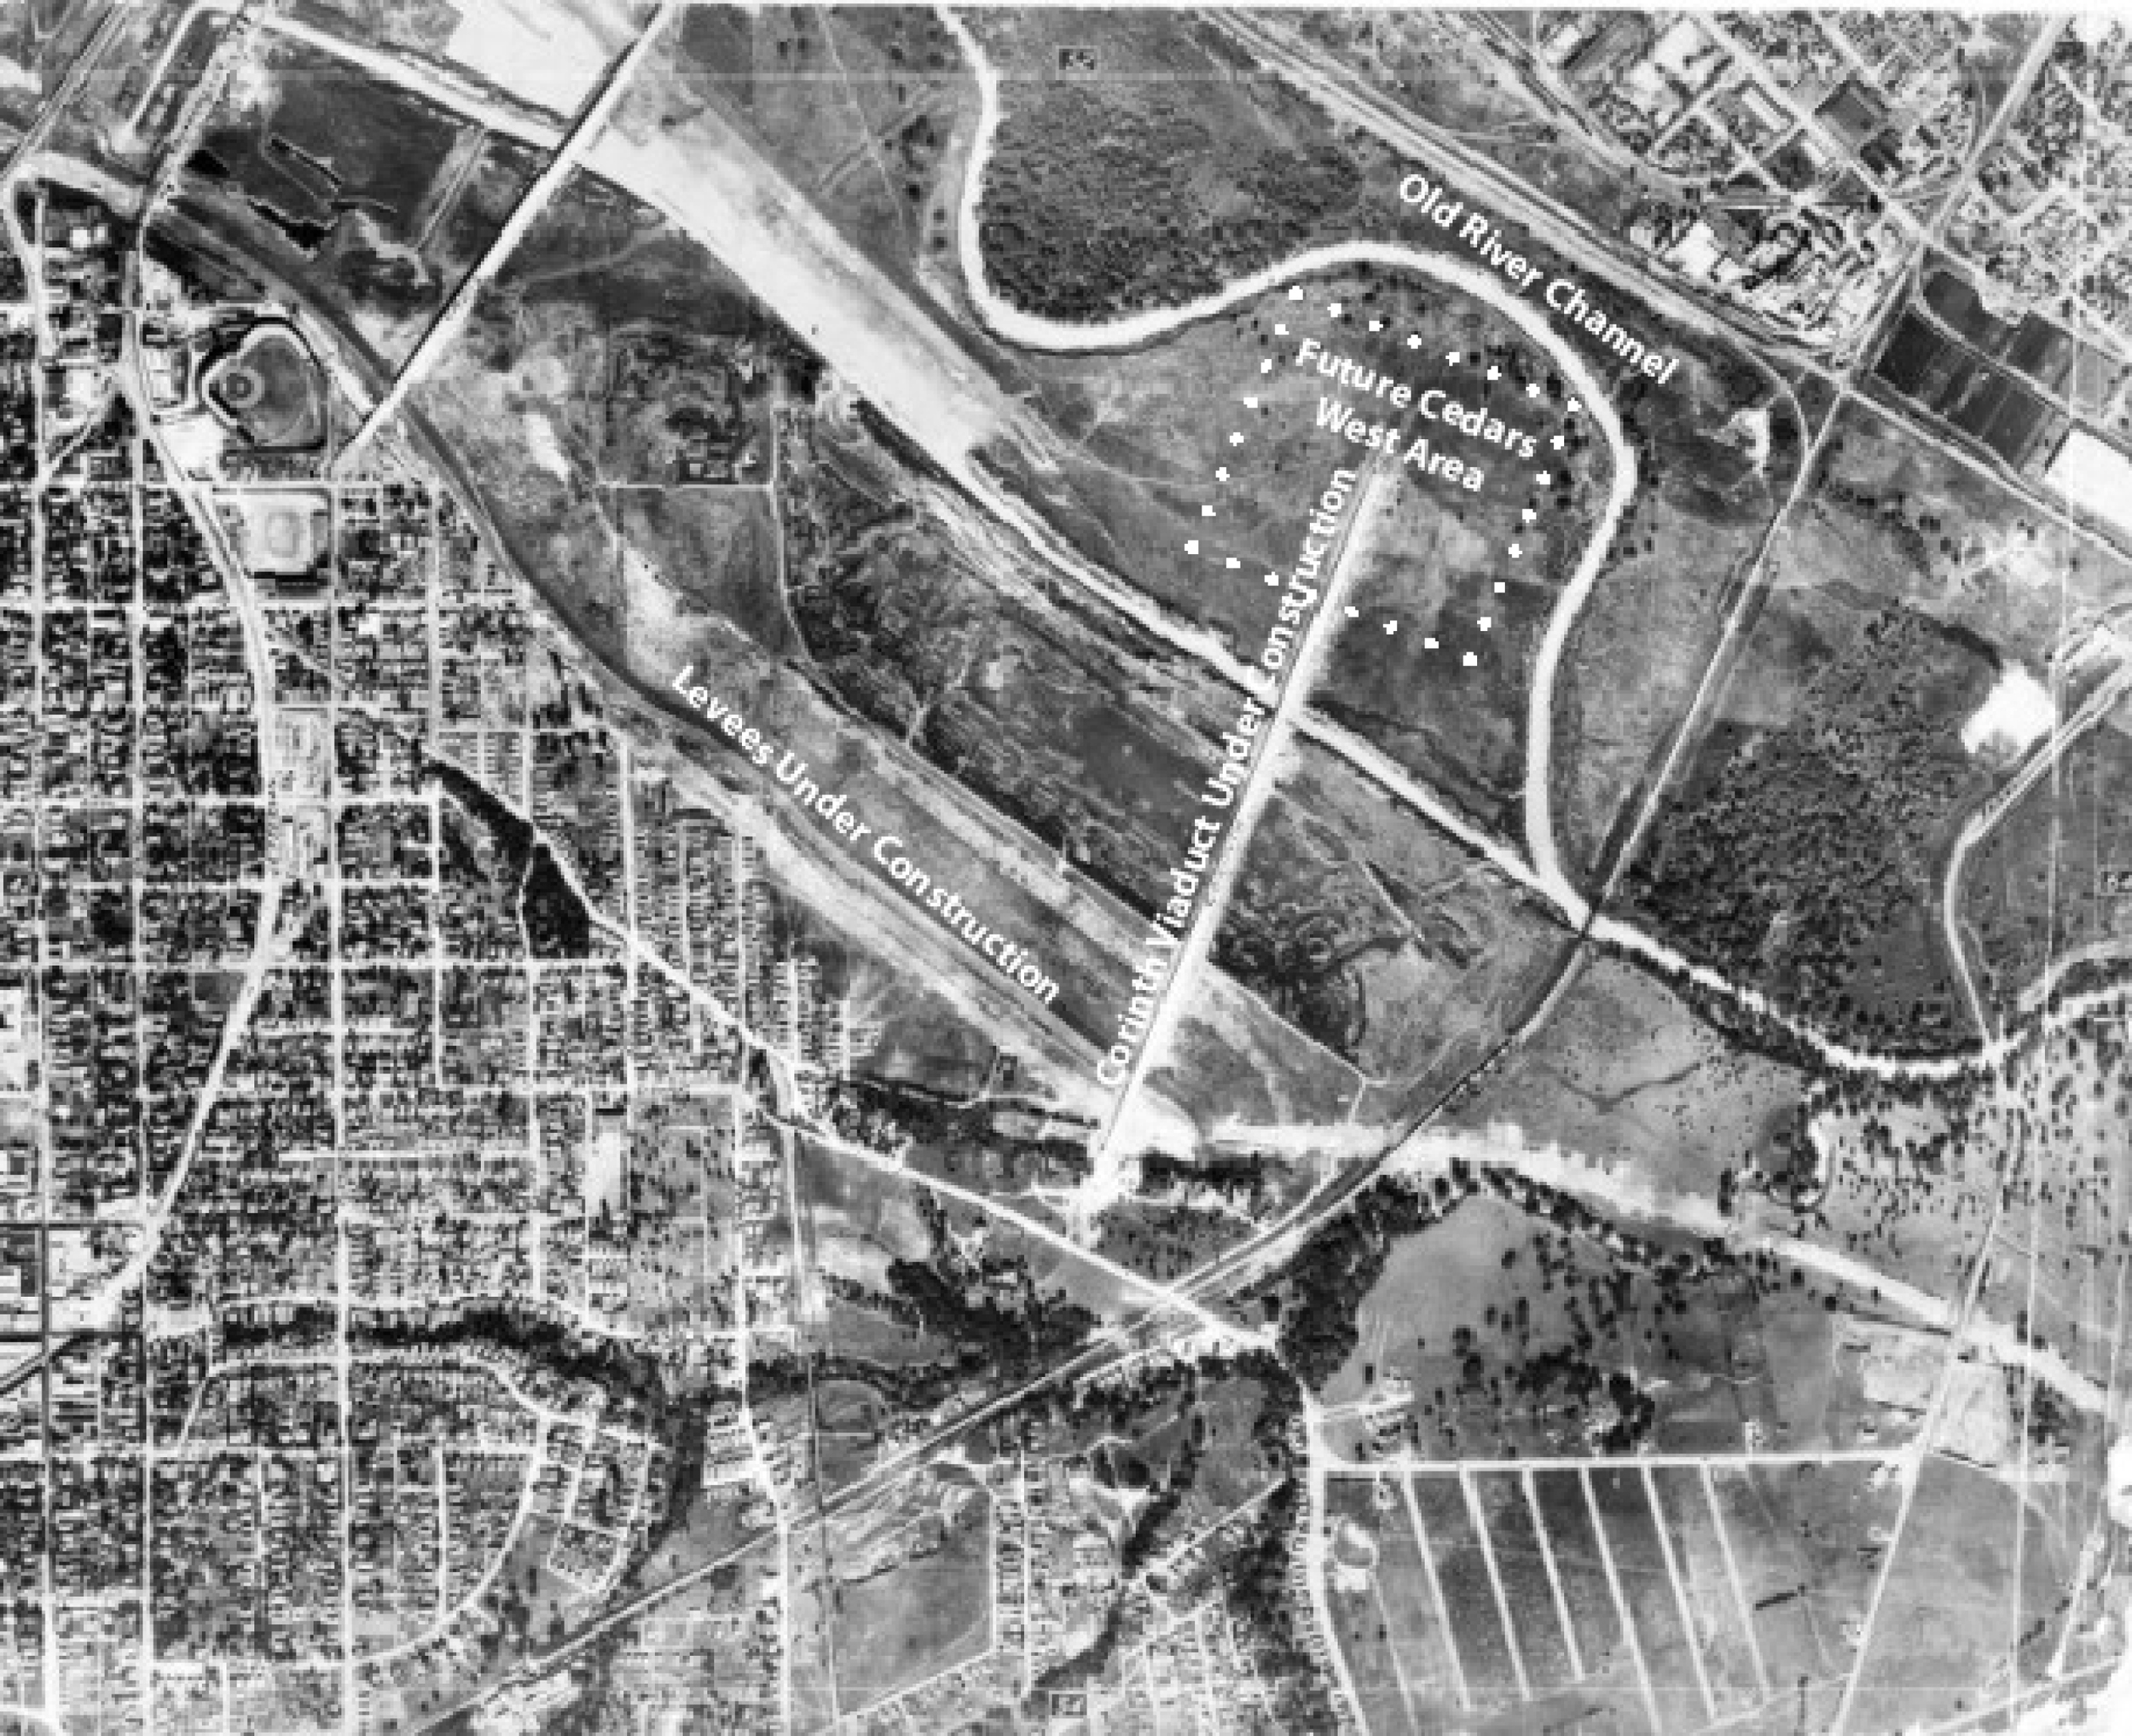 Aerial photograph of the Rock Island area in 1930